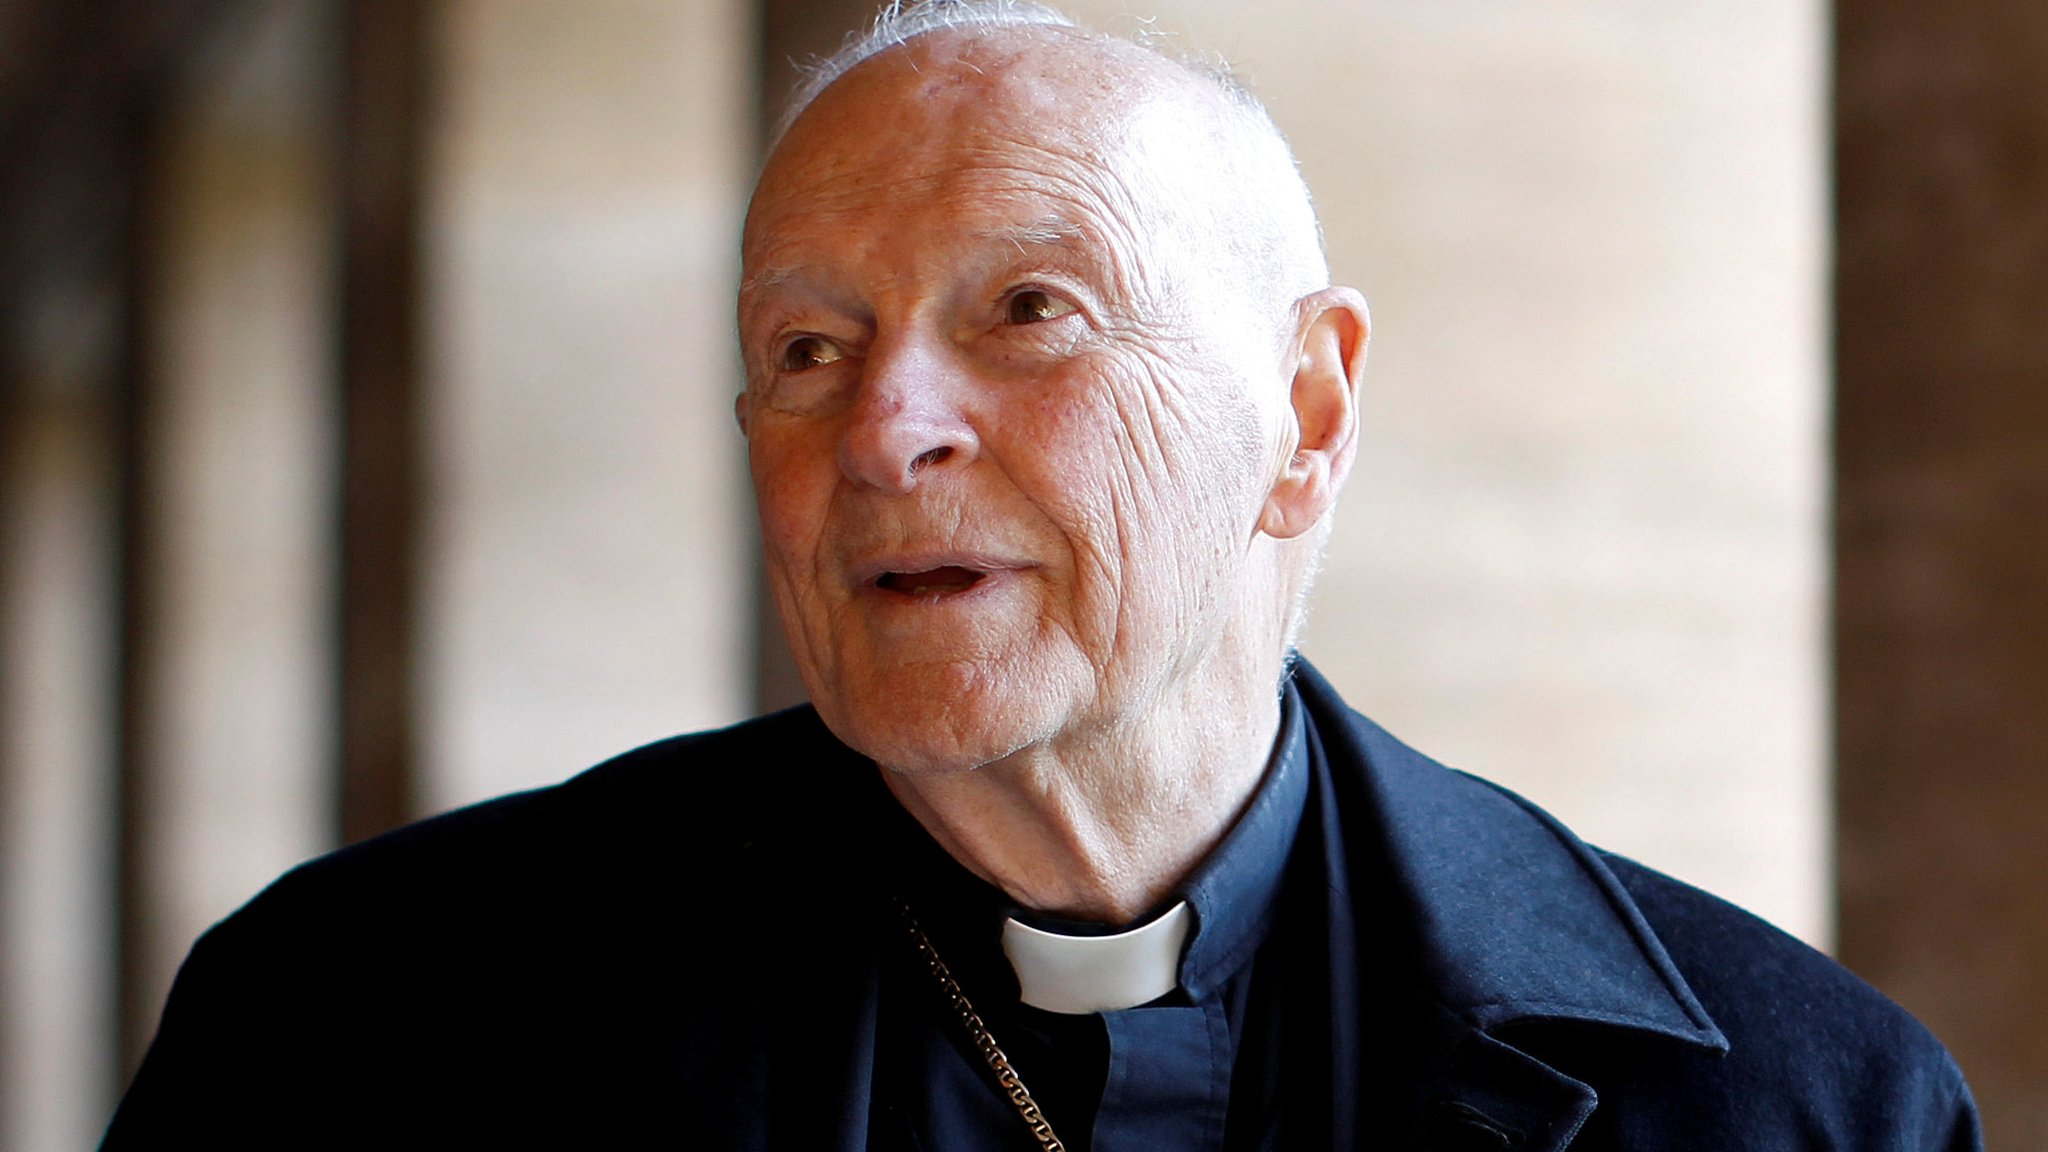 US ex-cardinal Theodore McCarrick defrocked over abuse claims